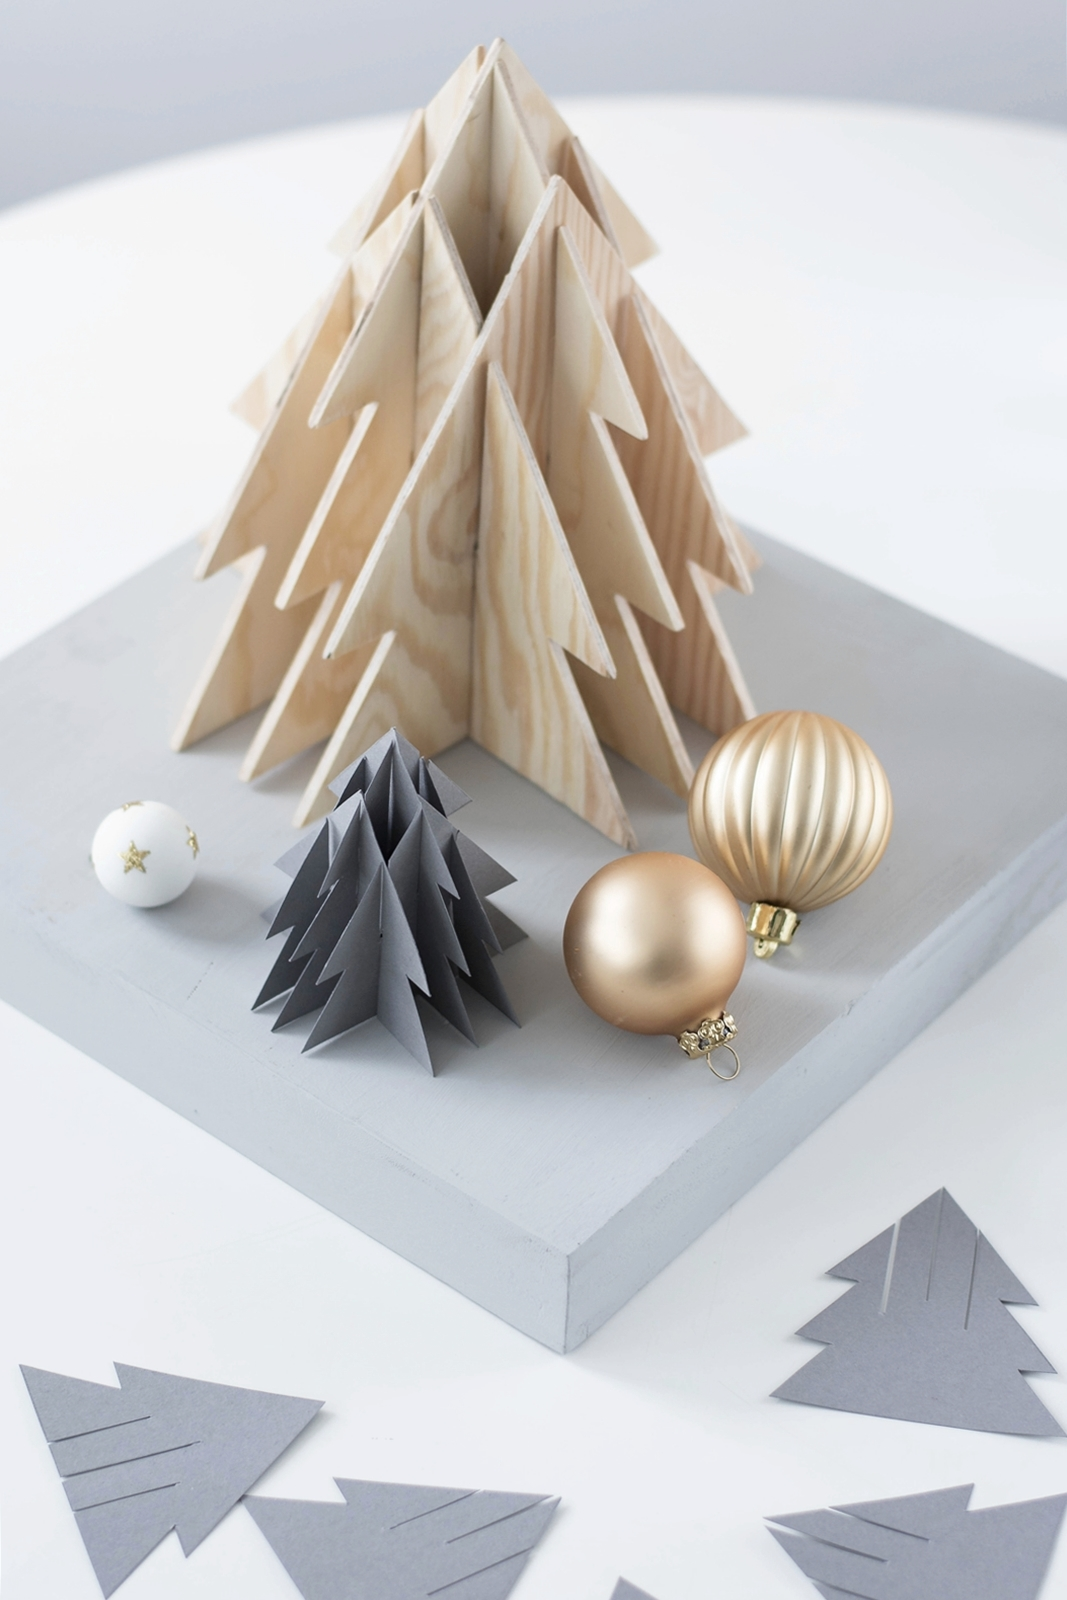 kreativ adventskalender t rchen 9 3 d weihnachtsbaum aus papier holz inkl vorlage. Black Bedroom Furniture Sets. Home Design Ideas